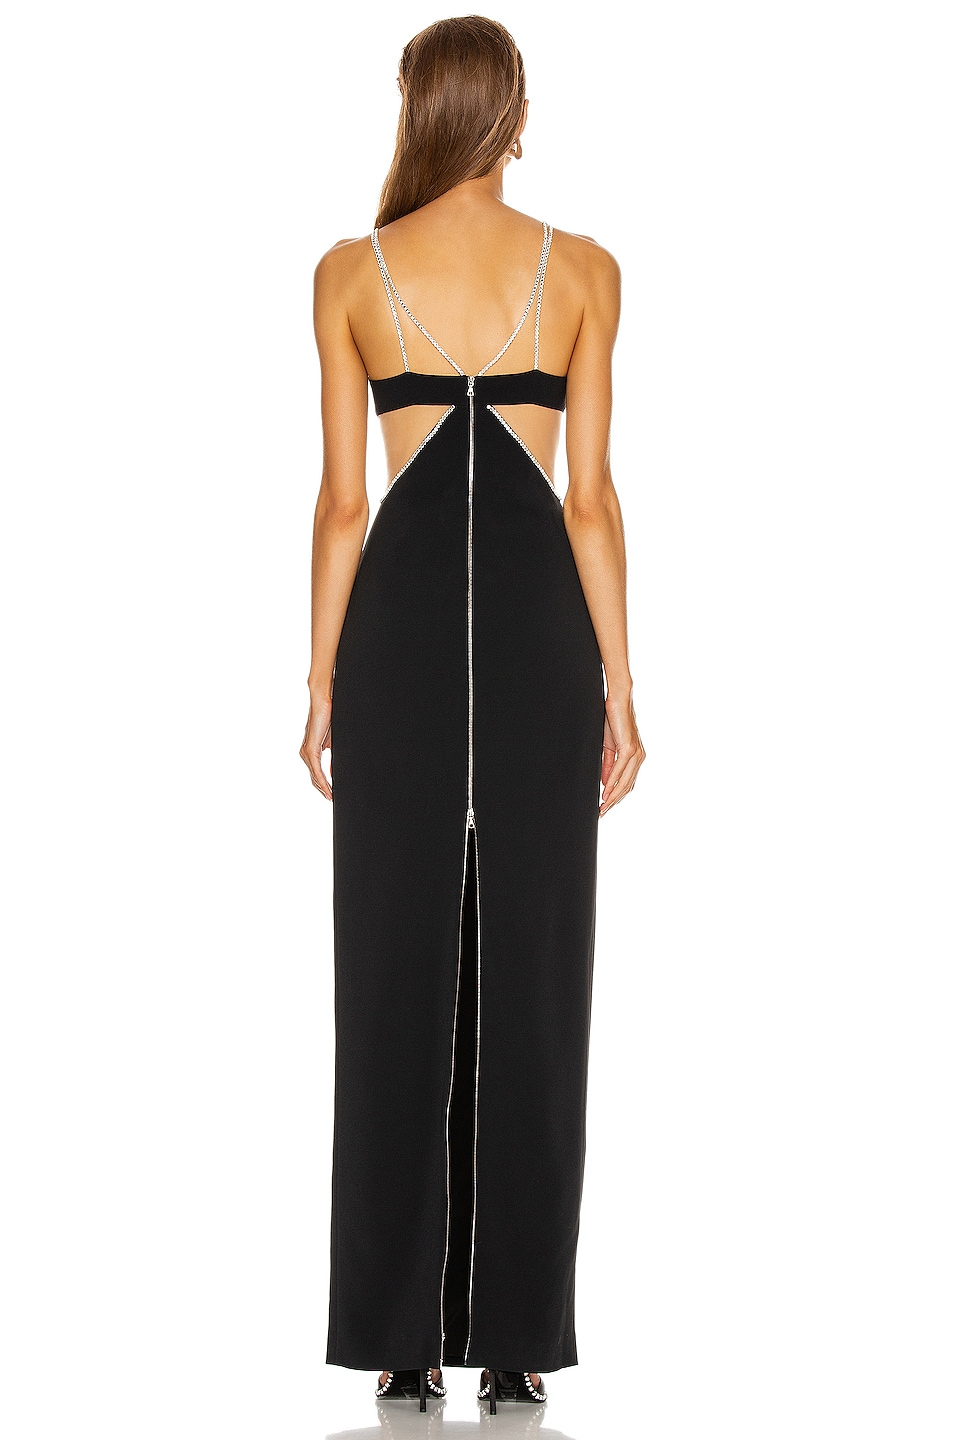 Image 3 of David Koma Crystal Chain Trim Bra Detail Gown in Black & Silver